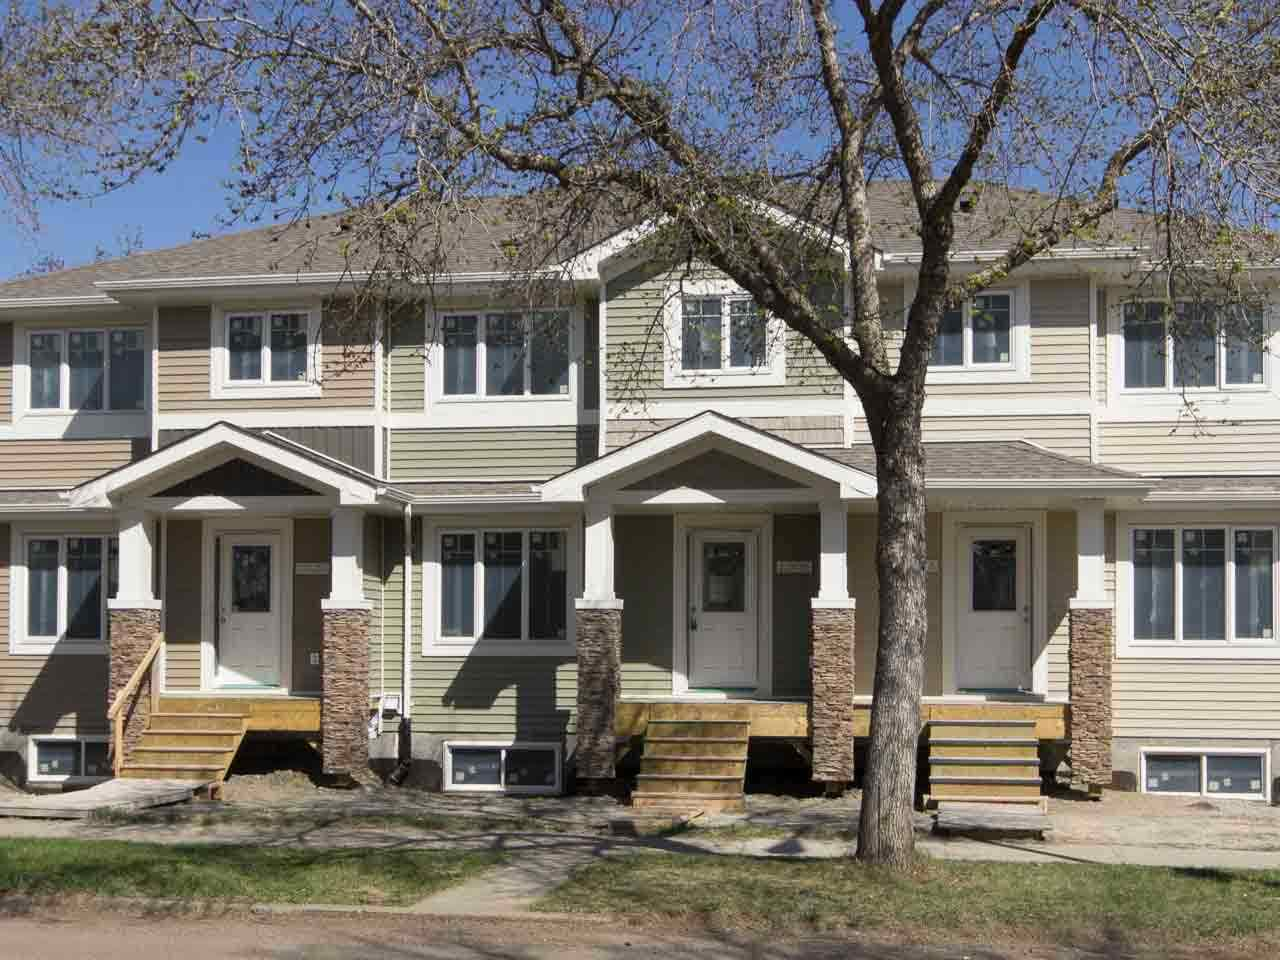 Main Photo: 12618 122 Avenue in Edmonton: Zone 04 Townhouse for sale : MLS(r) # E4066750